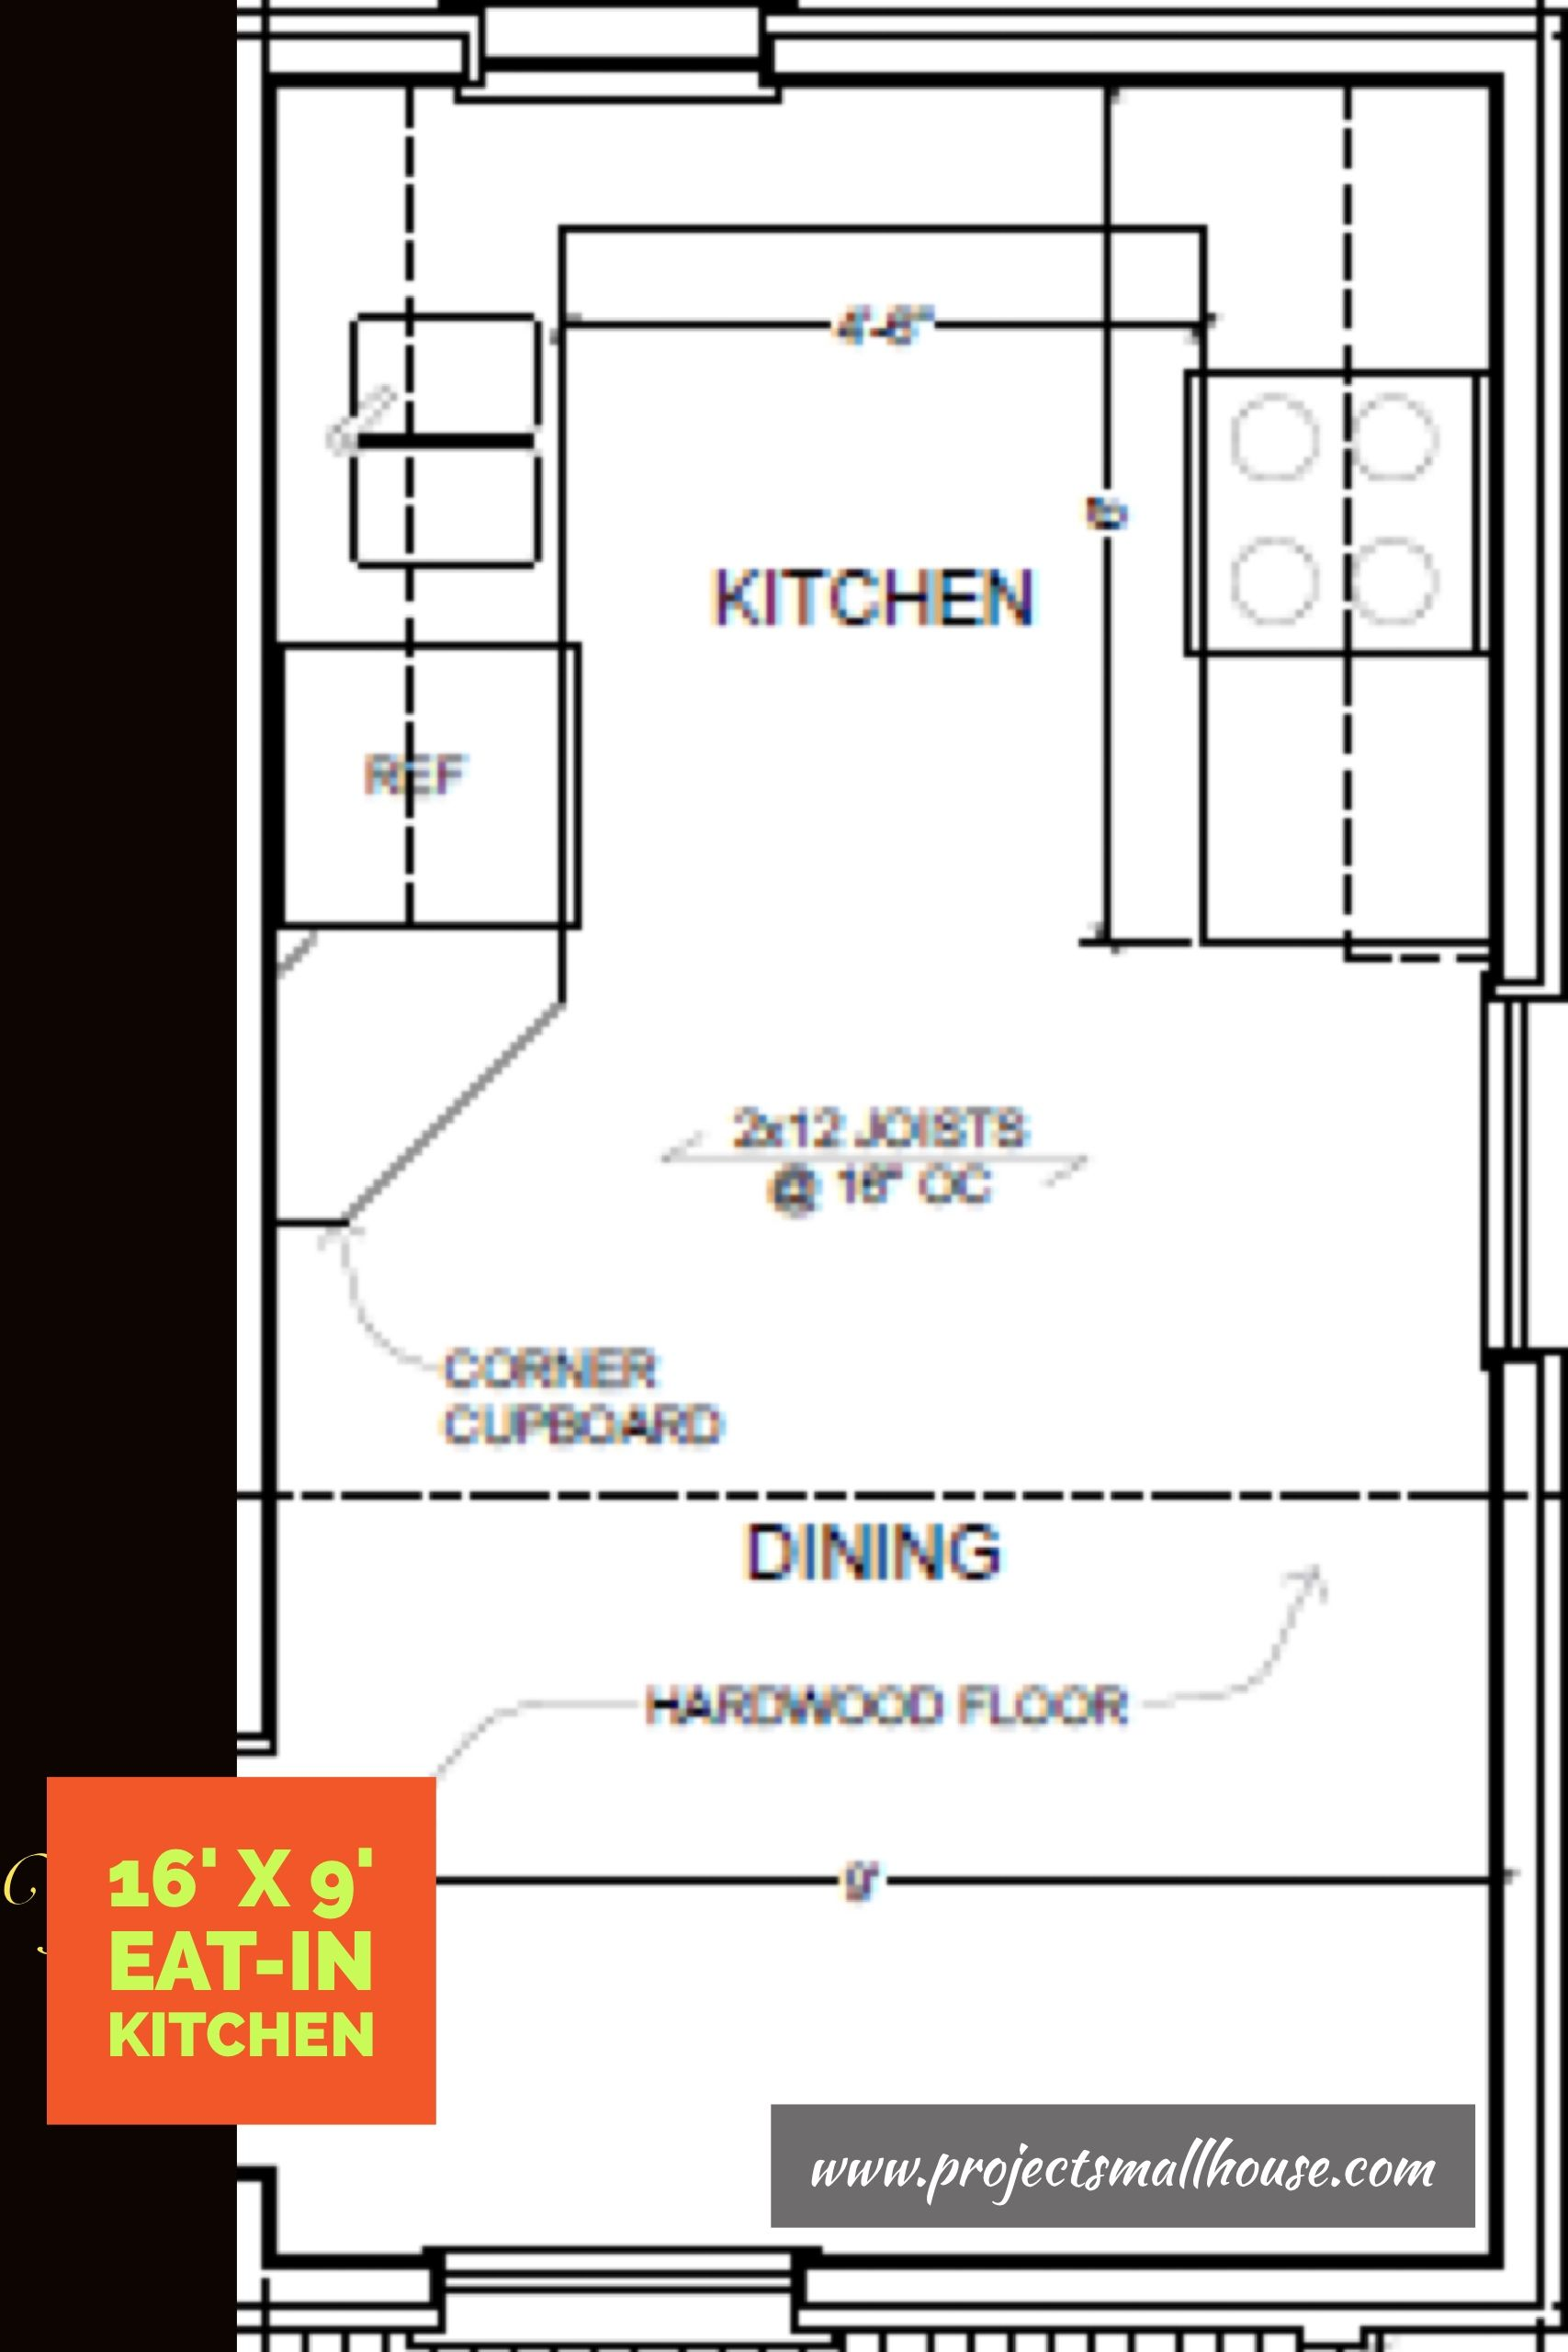 eat in kitchen floor plans two story 16 x 32 virginia farmhouse house plans with images kitchen layout plans house 1425